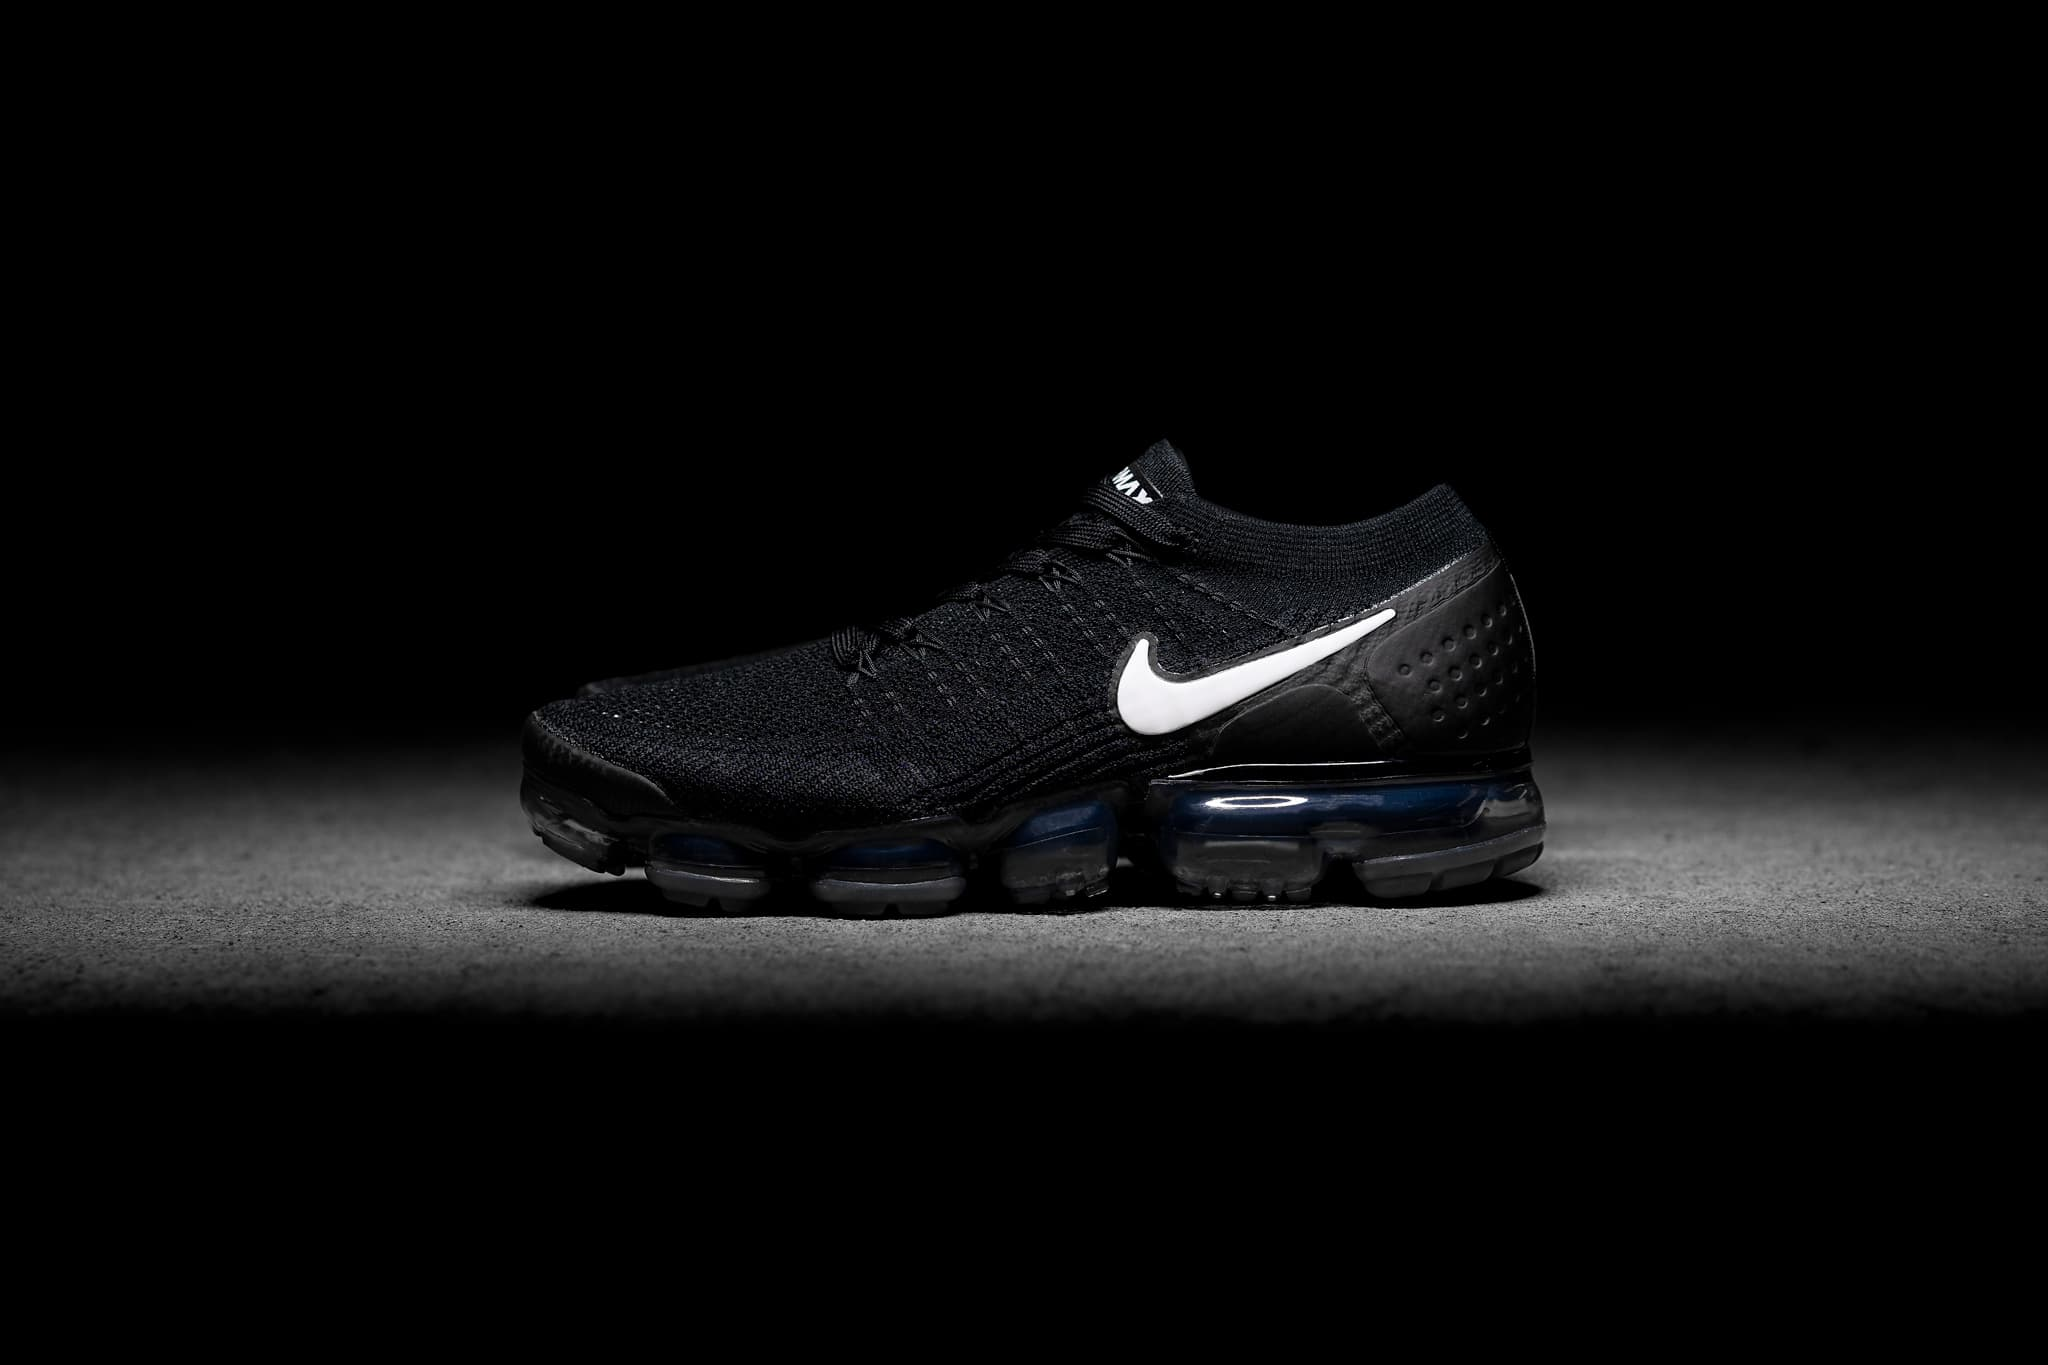 b4a255621f Nike-Air-Vapormax-Flyknit-2-BLACK-News-Web-1_enq8ww.jpg